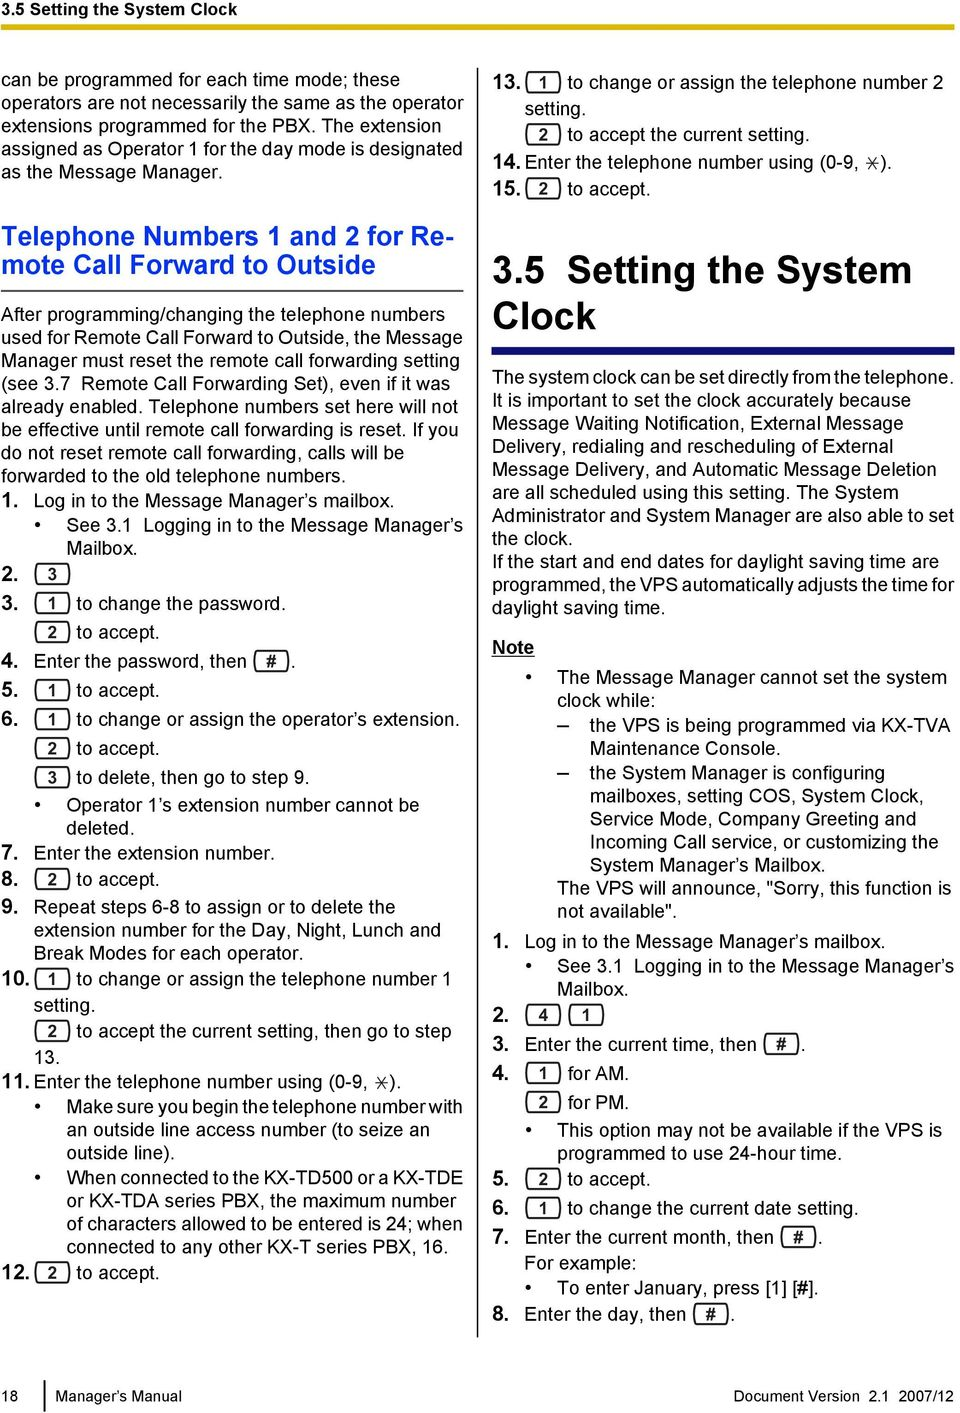 Telephone Numbers 1 and 2 for Remote Call Forward to Outside After programming/changing the telephone numbers used for Remote Call Forward to Outside, the Message Manager must reset the remote call